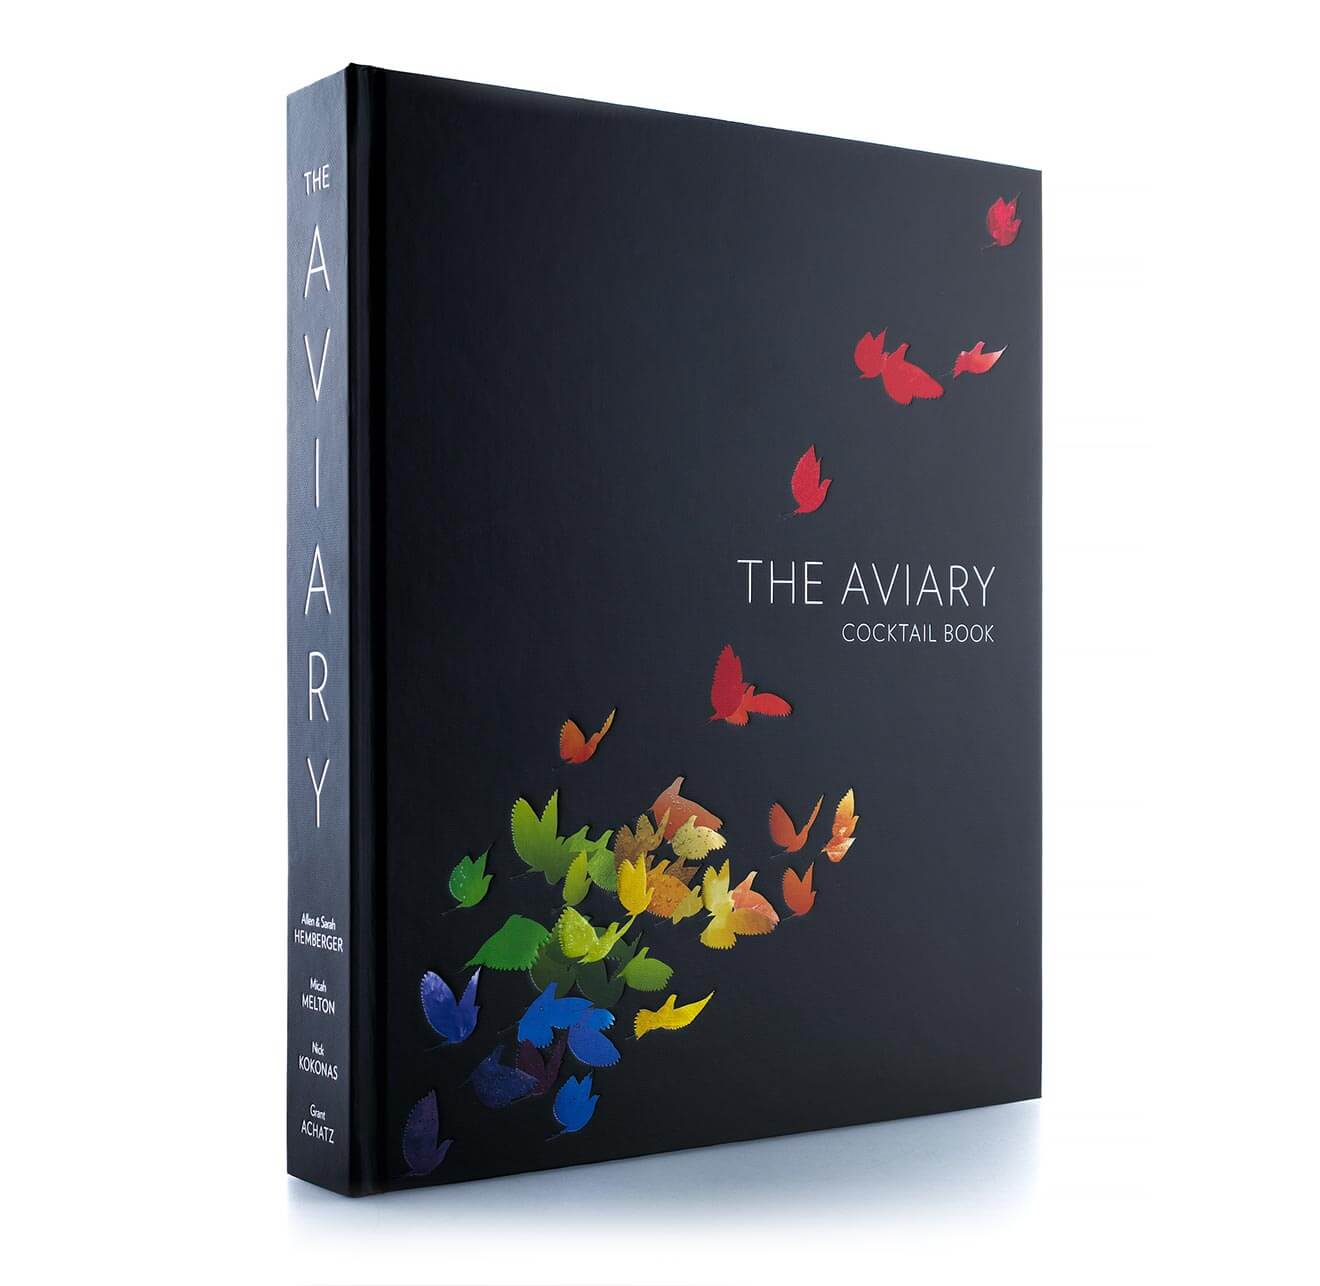 The Aviary Cocktail Book, book on white background